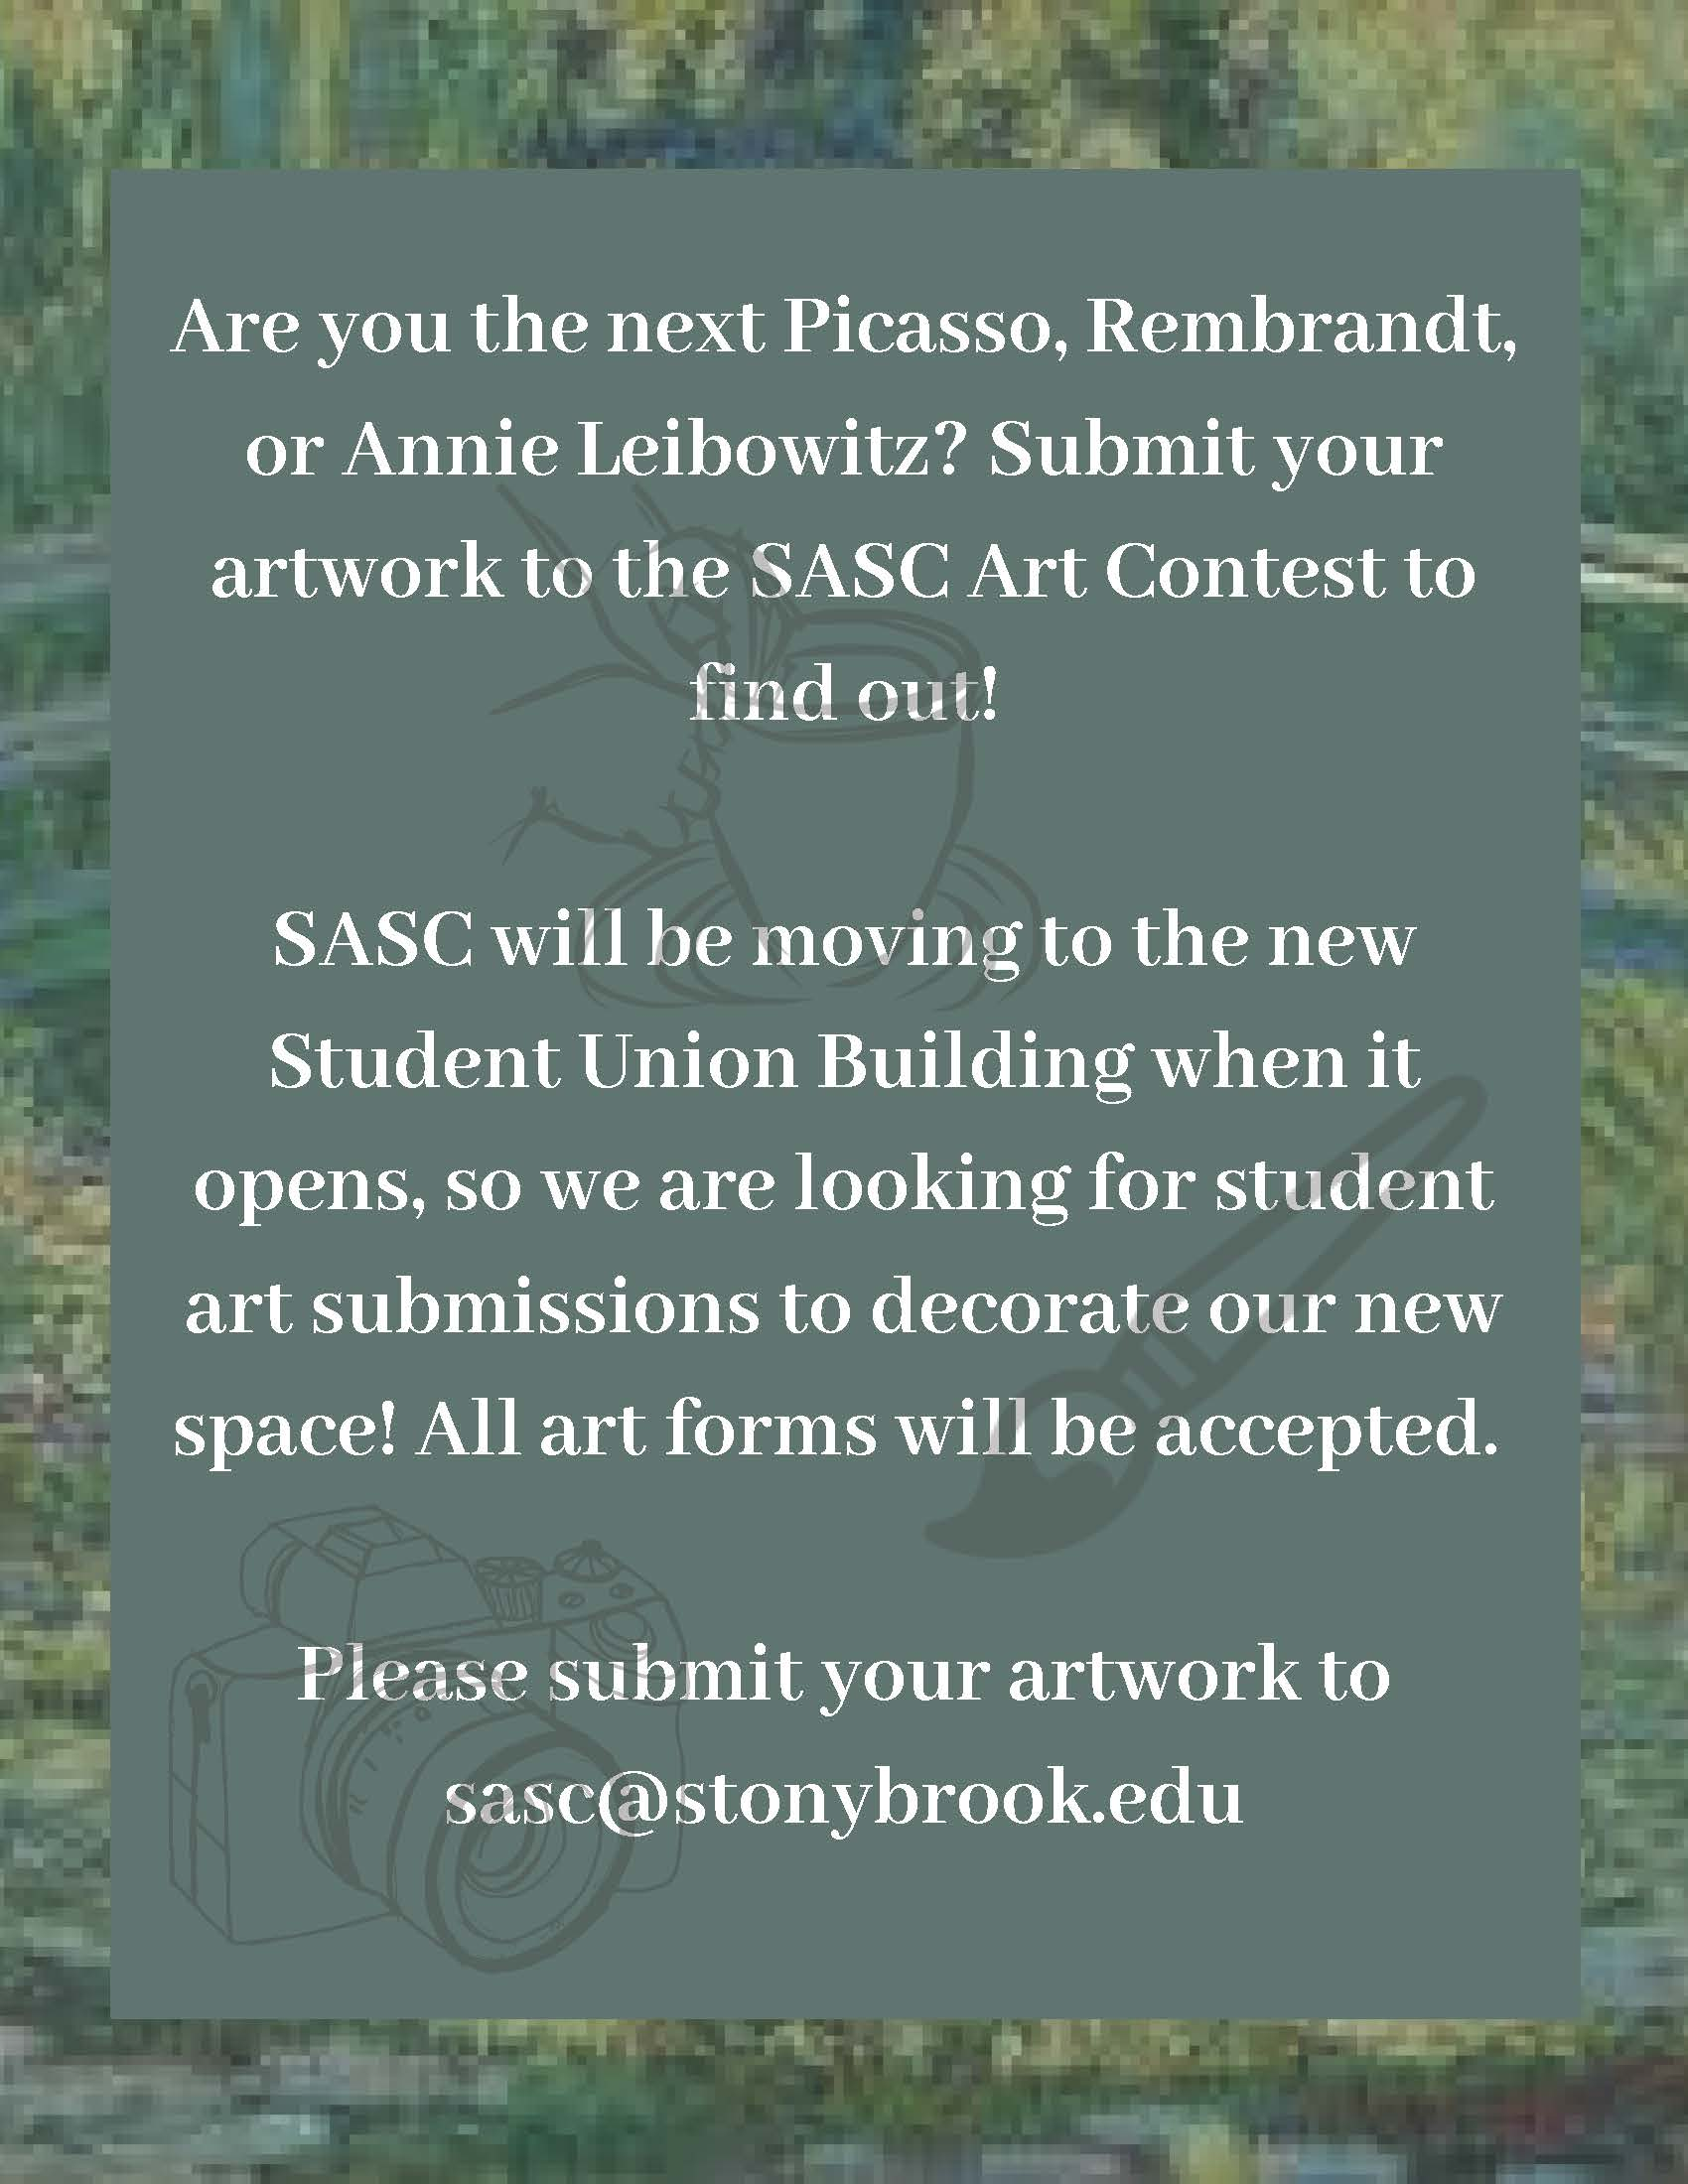 SASC Art Contest Flier